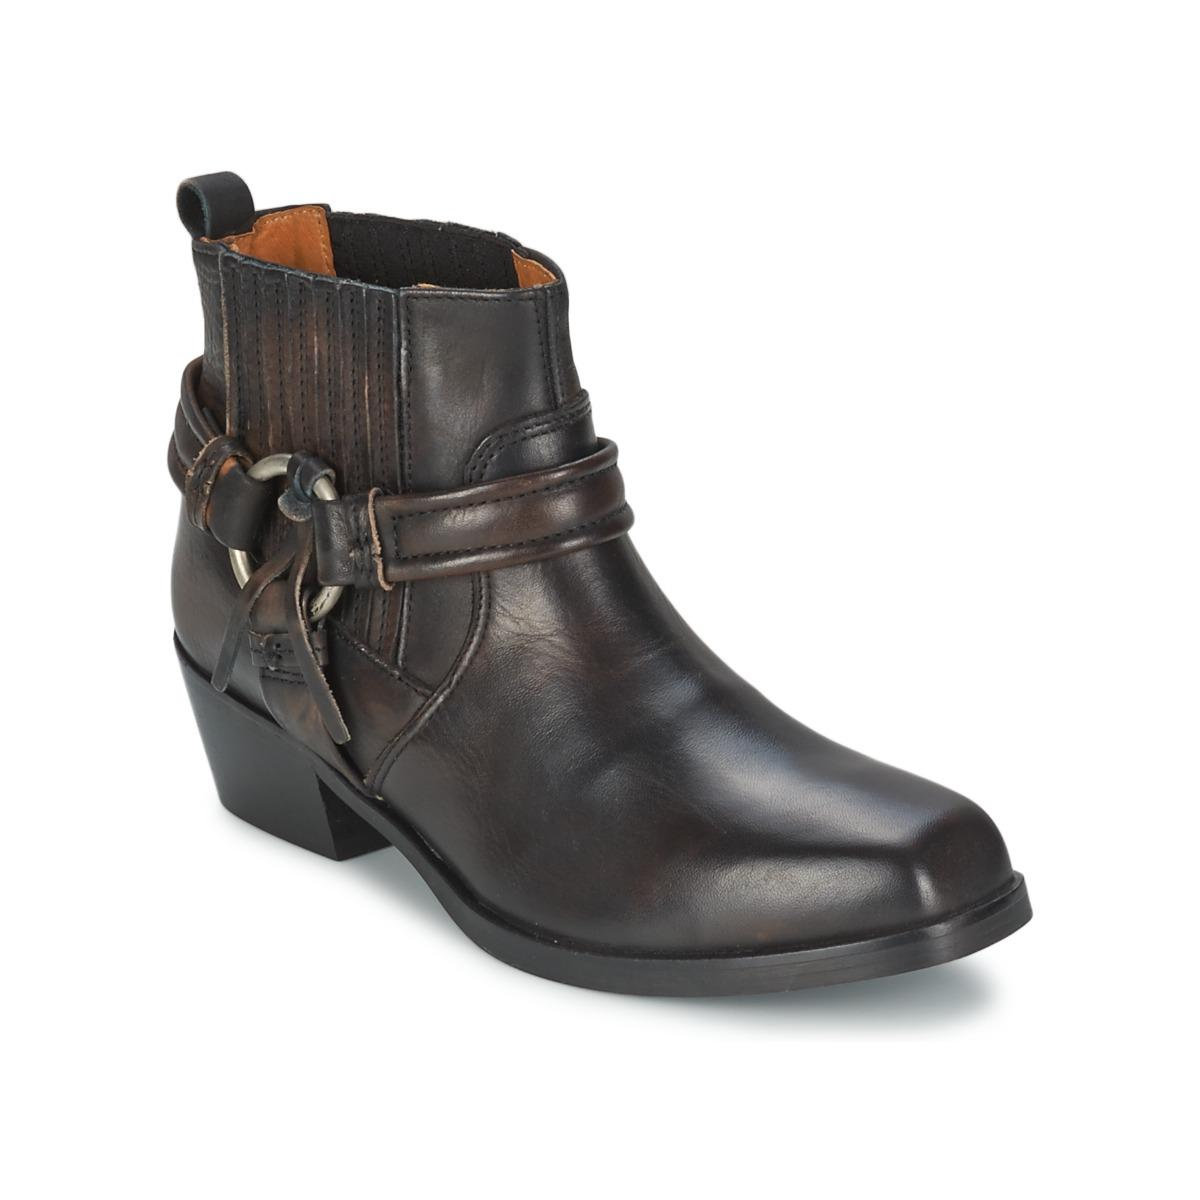 Outlet Best Wholesale Sale Low Price Fee Shipping Diesel HARLESS women's Mid Boots in 7wwEr4CE